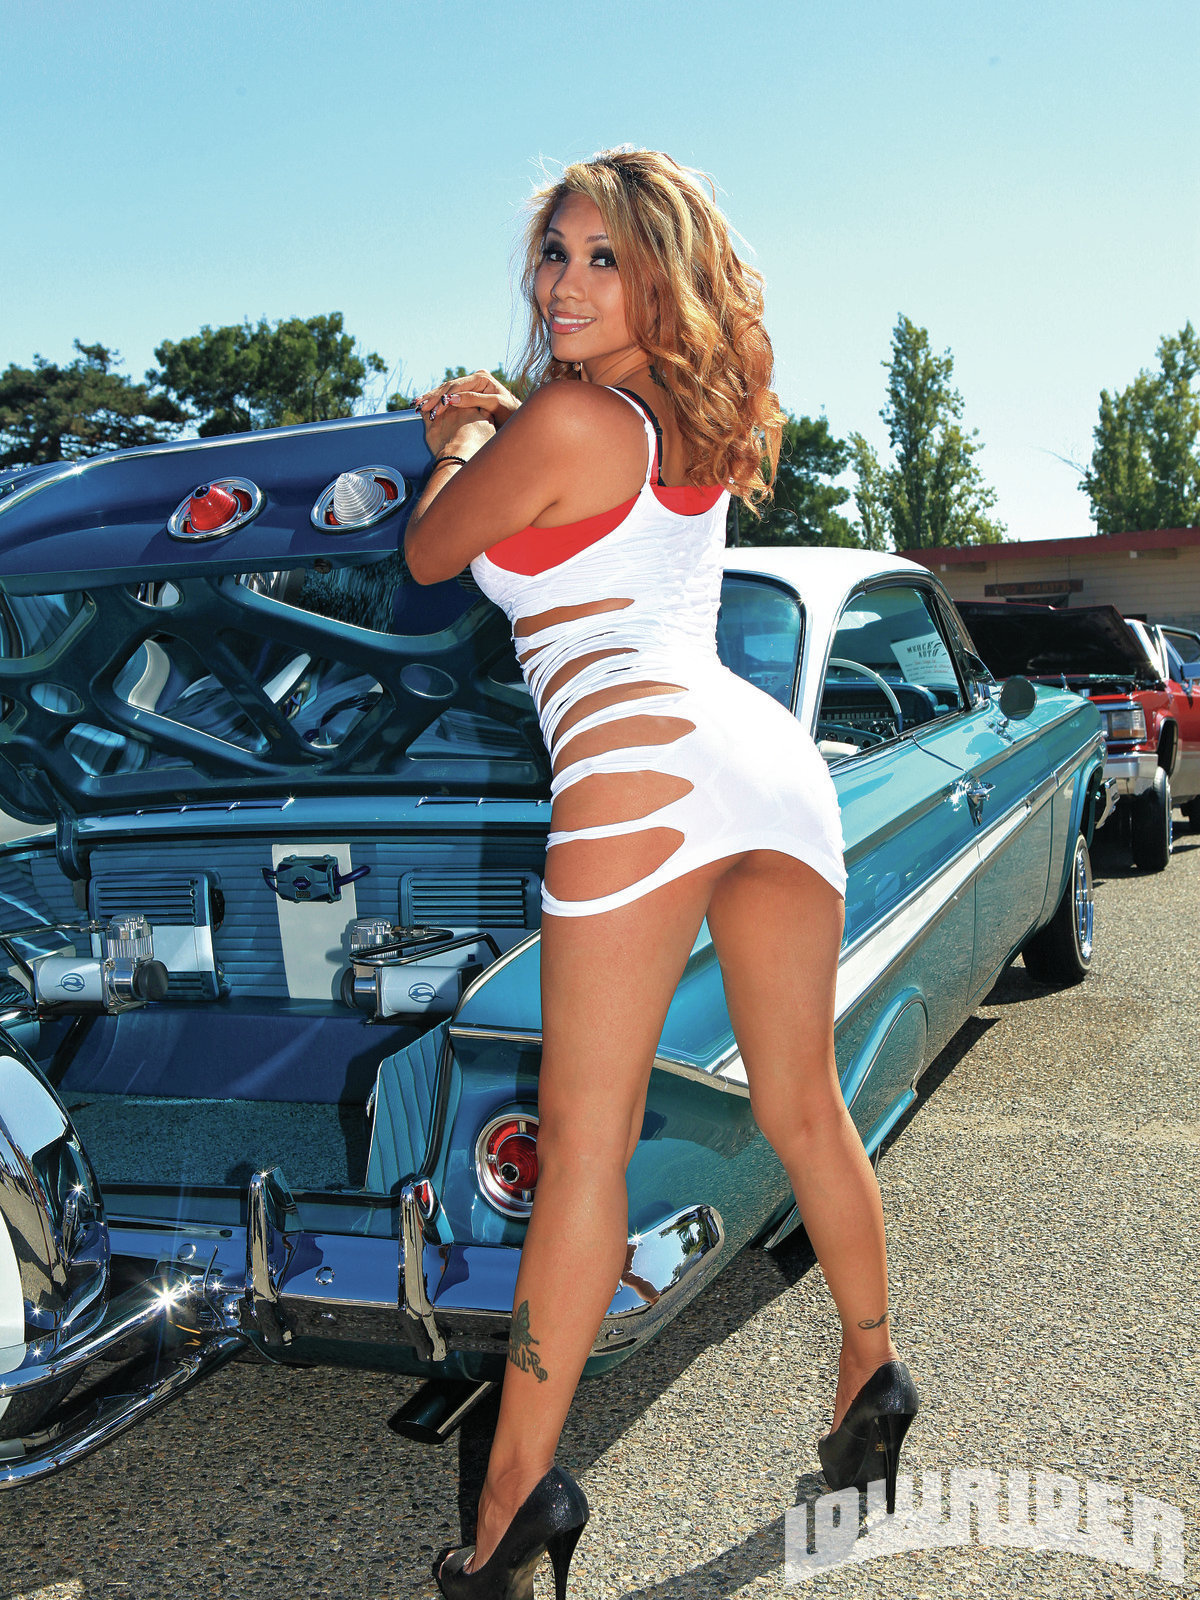 Classic Car Shows In Orange County